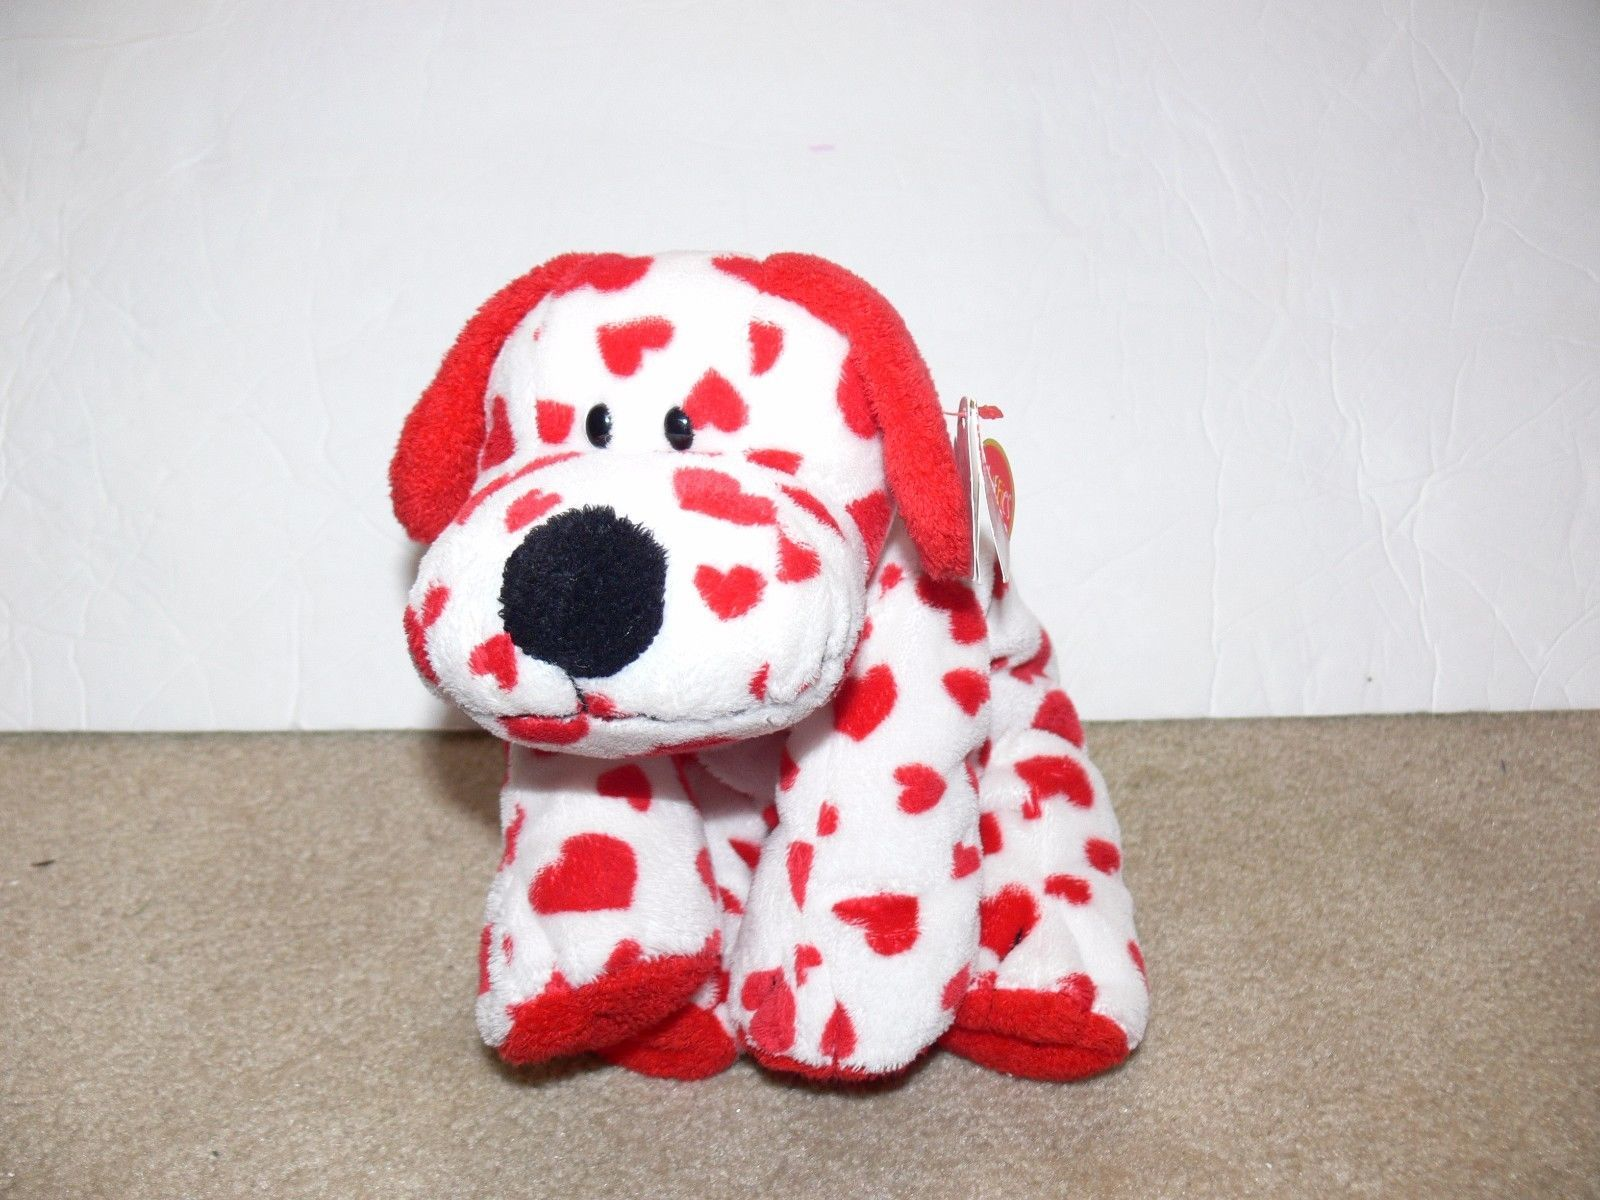 72ce6903ee1 S l1600. S l1600. Previous. 2006 Ty Pluffies Beanie Sweetly Puppy Dog Red  Hearts White Plush Baby Toy ek